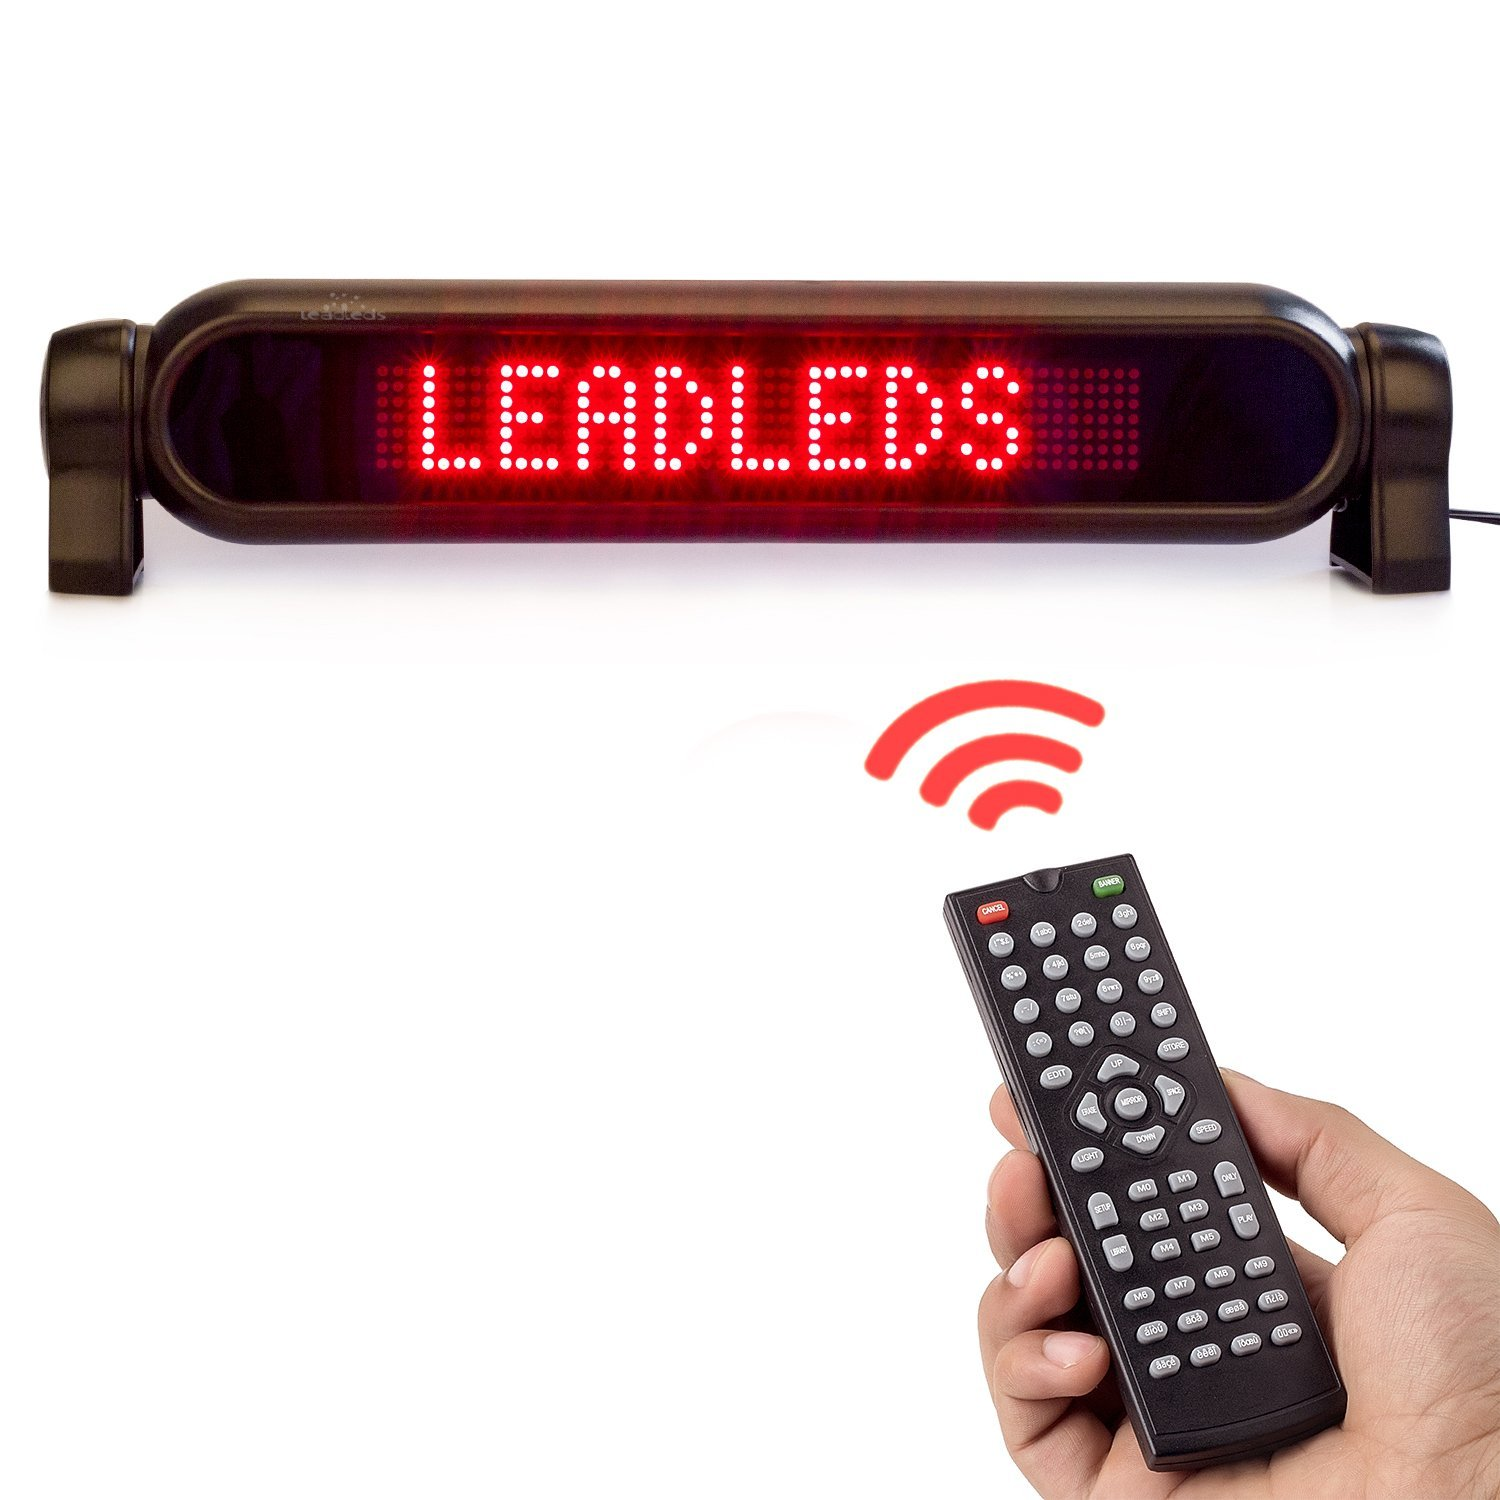 Leadleds Dc12v Led Car Rear Window Sign Board Scrolling Running Lights Electronics Project Red Message Display Banner With Remote Controller And Cigar Lighter Fast